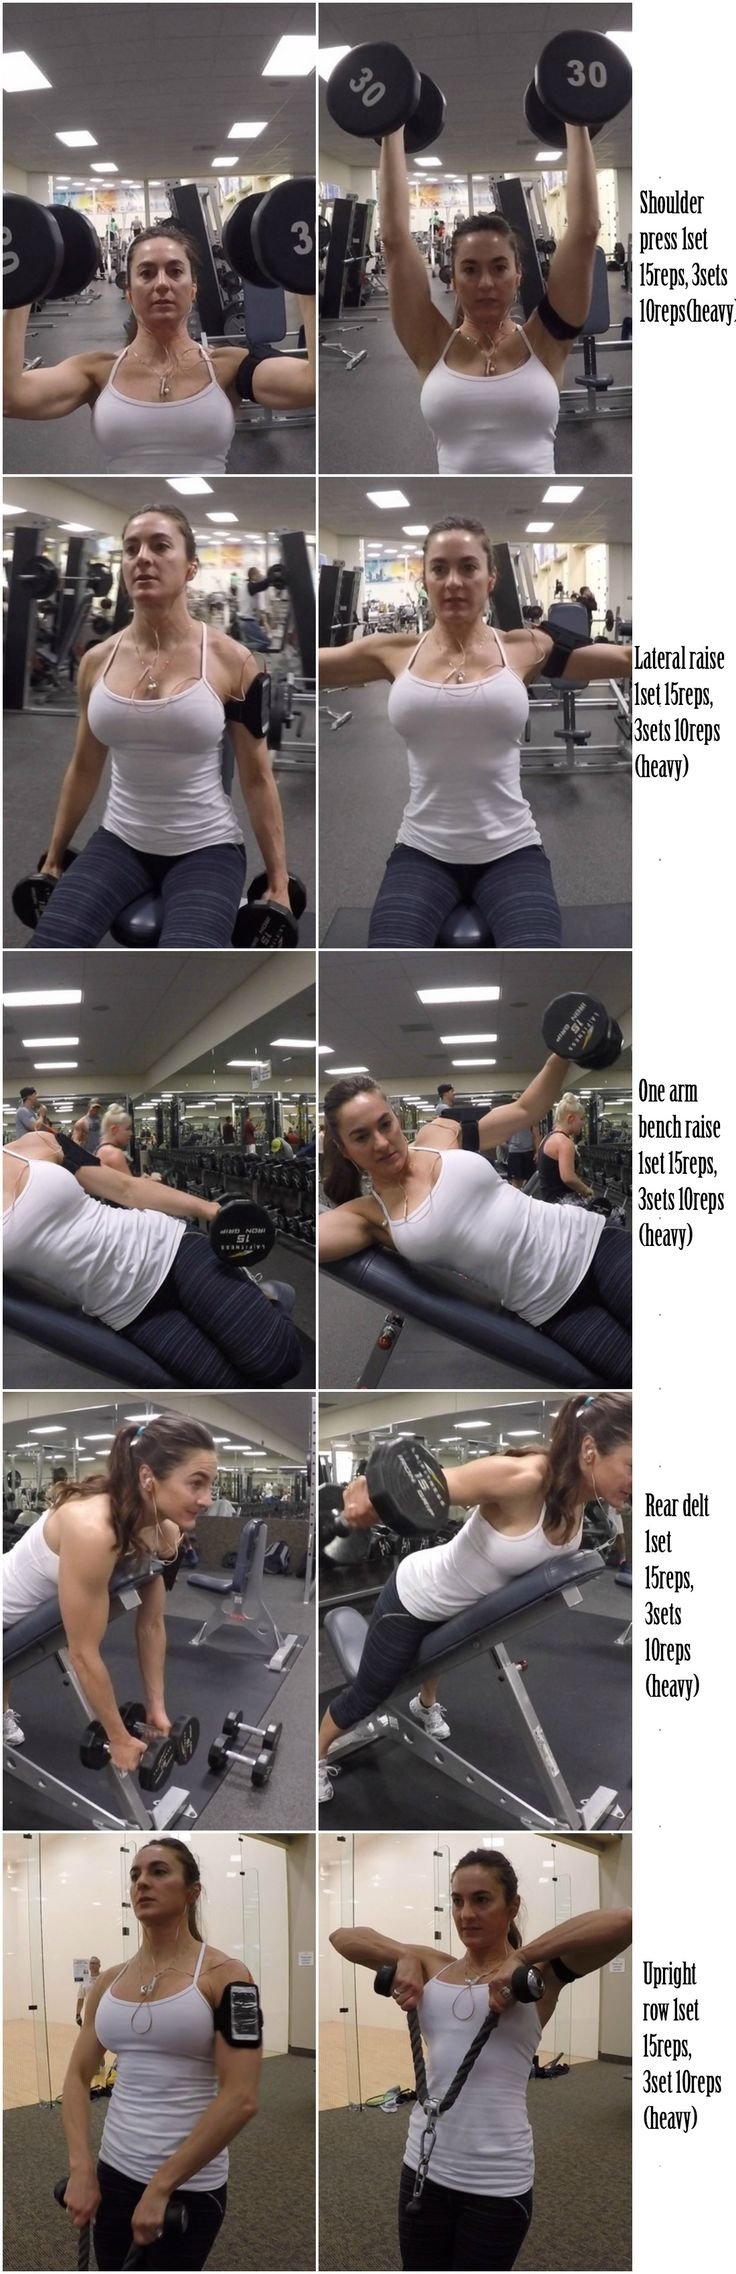 6 WEEKS SUMMERTIME SLIM DOWN: DAY 13: SHOULDERS (Cardio: 45 minutes on the stairclimber)